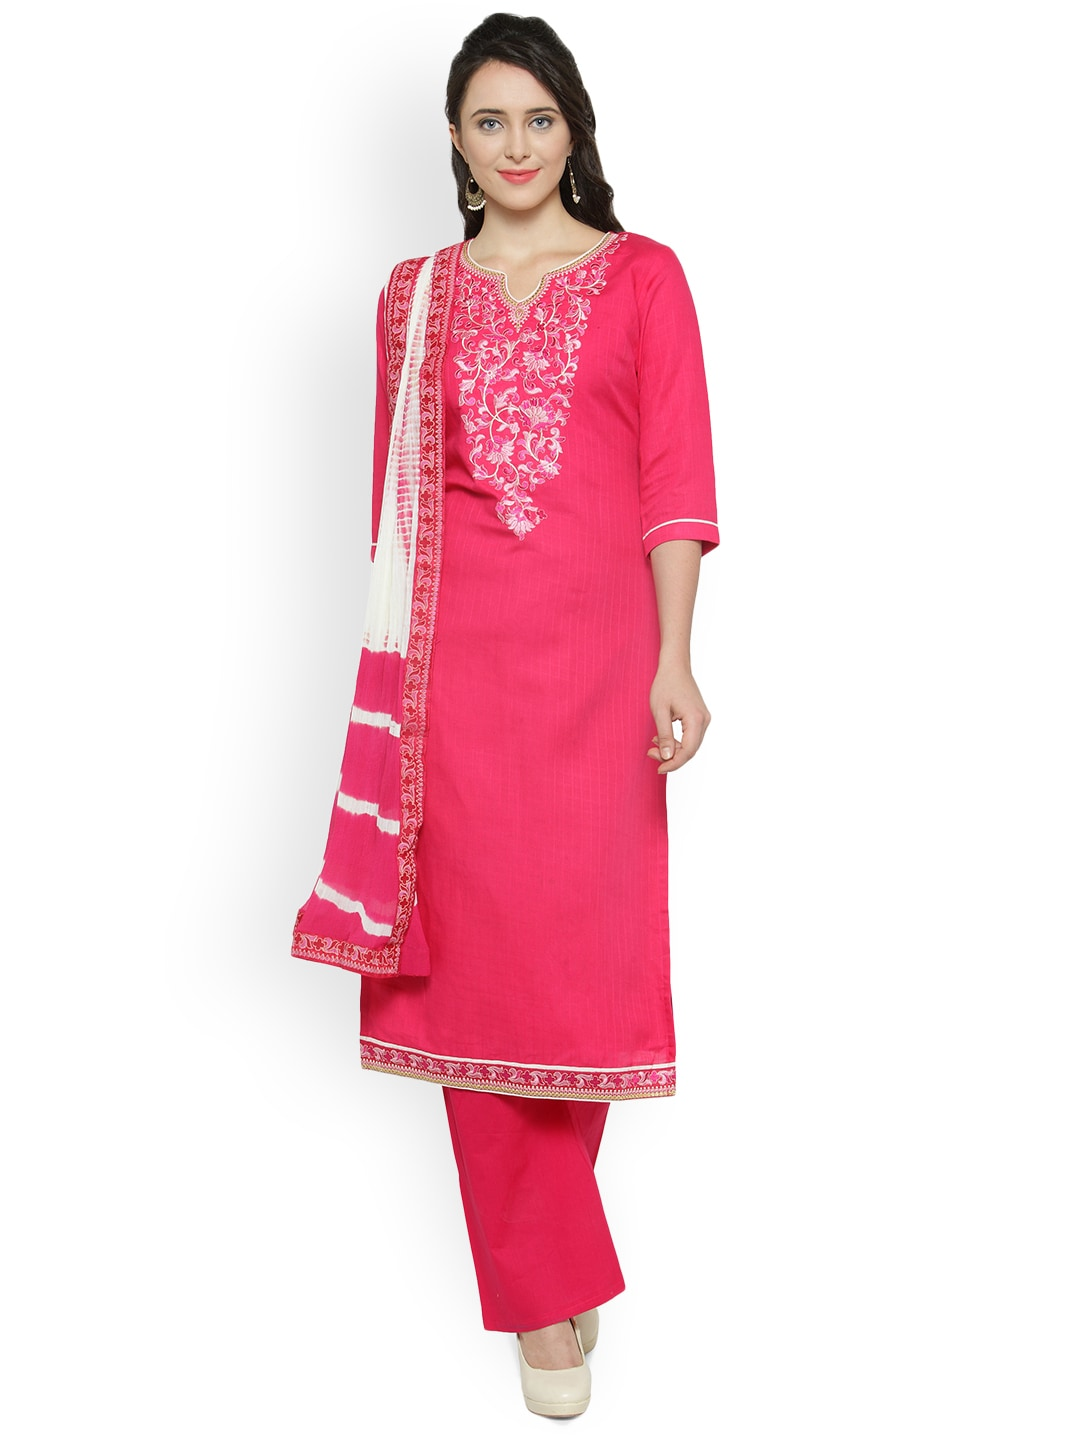 Kvsfab Pink & White Pure Cotton Unstitched Dress Material image